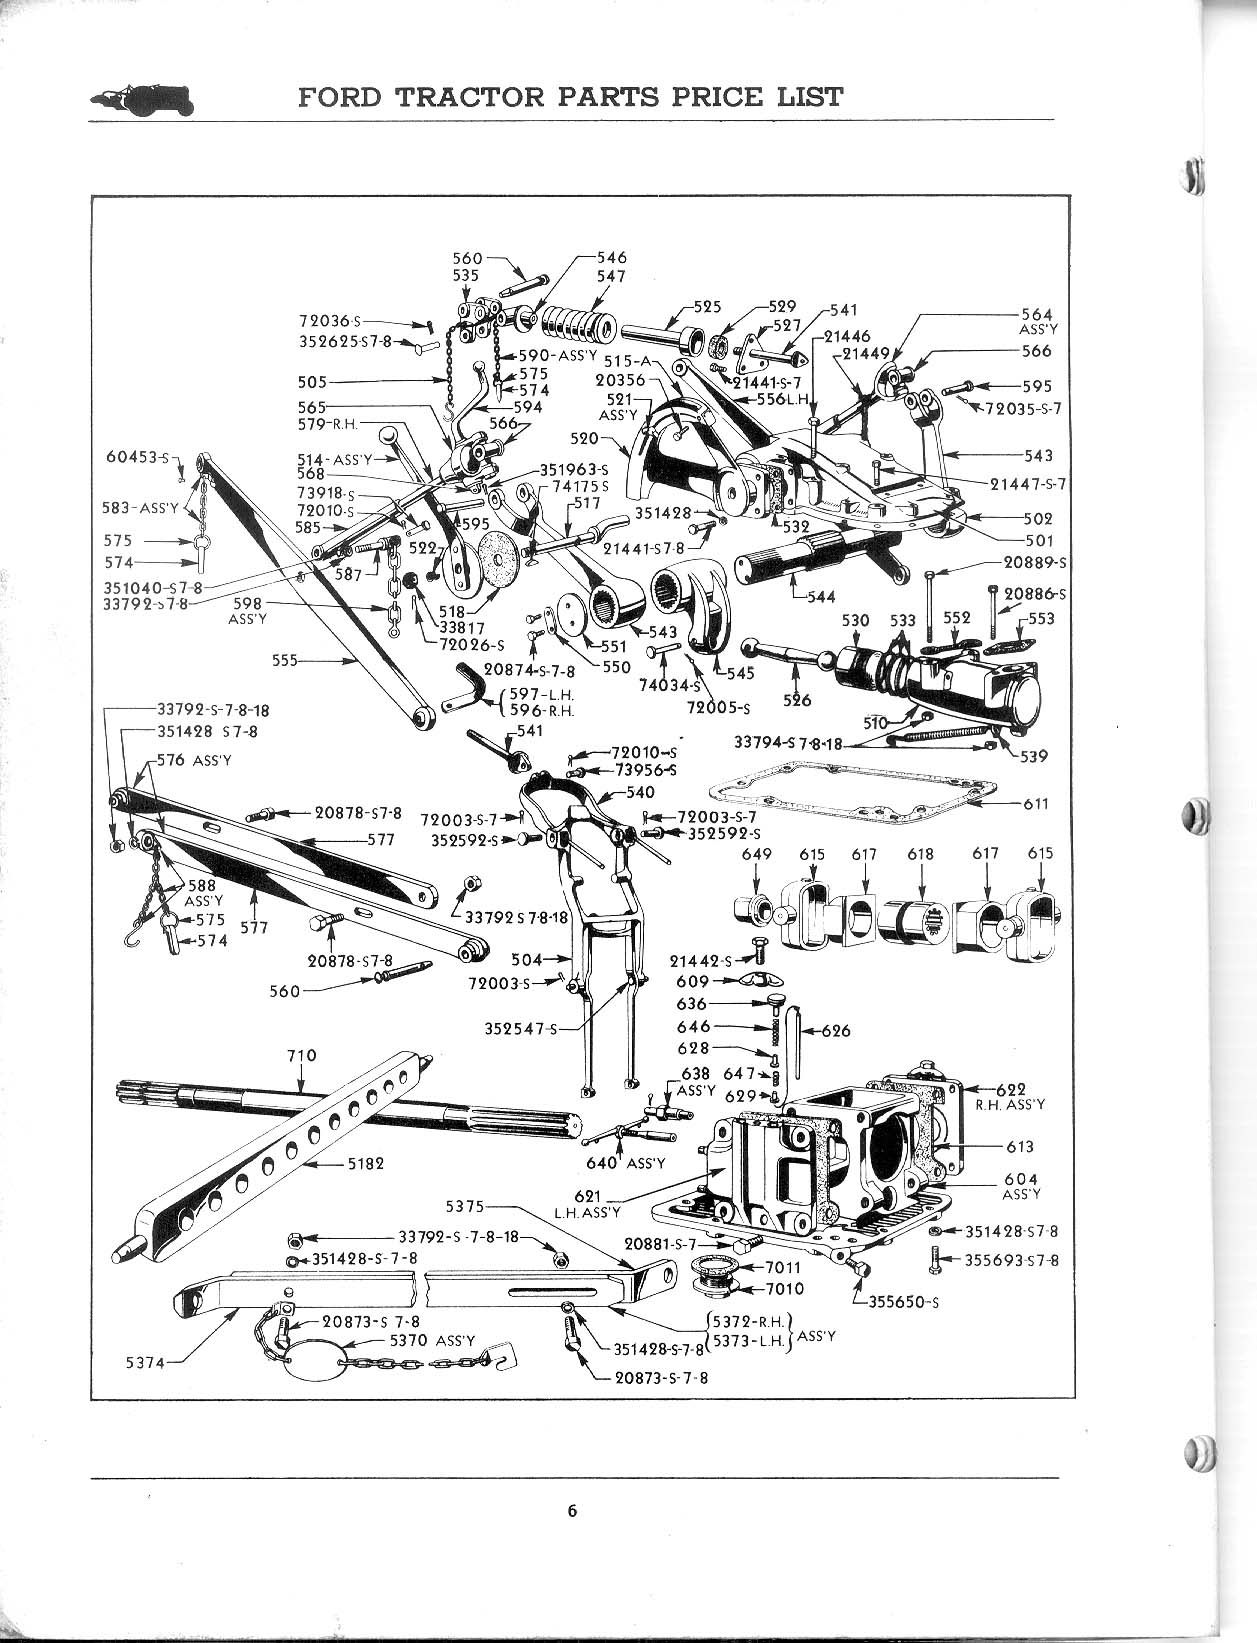 2n Ford Tractor Wiring Diagram Another Blog About 601 Workmaster 12 Volt Diagrams For Free Engine